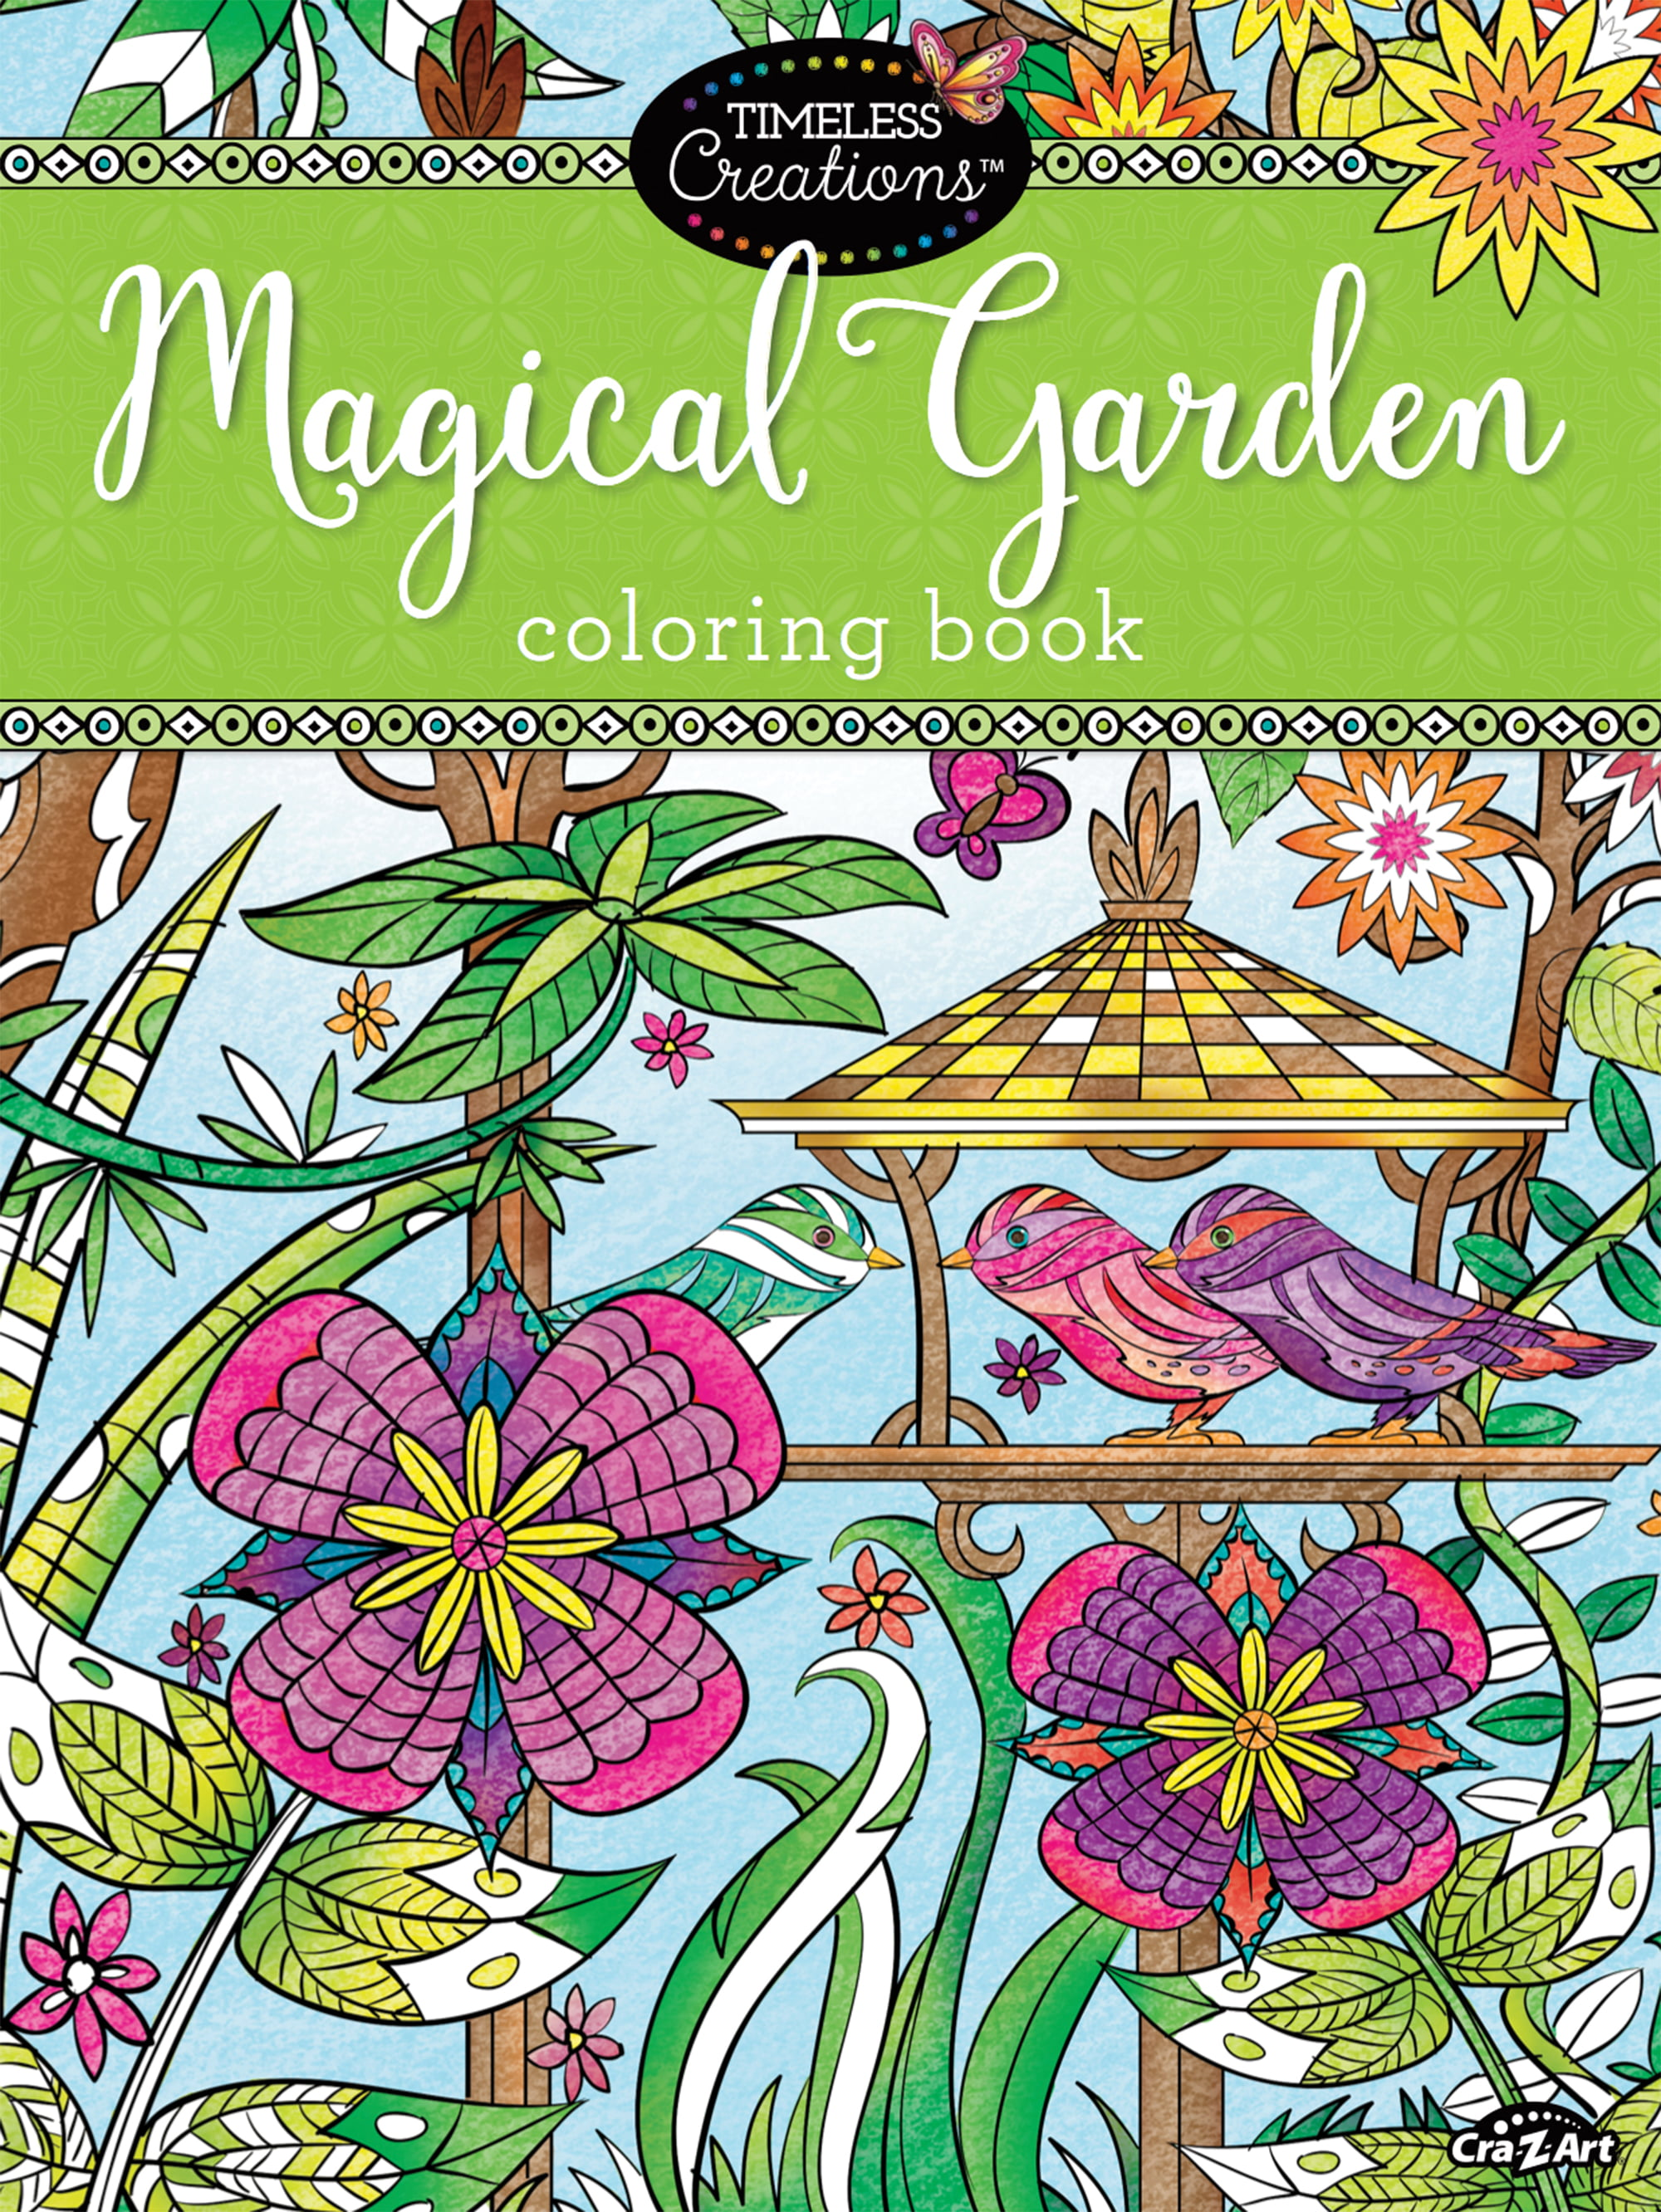 Cra-Z-Art Timeless Creations MagICAL GARDENS Coloring Book by Generic